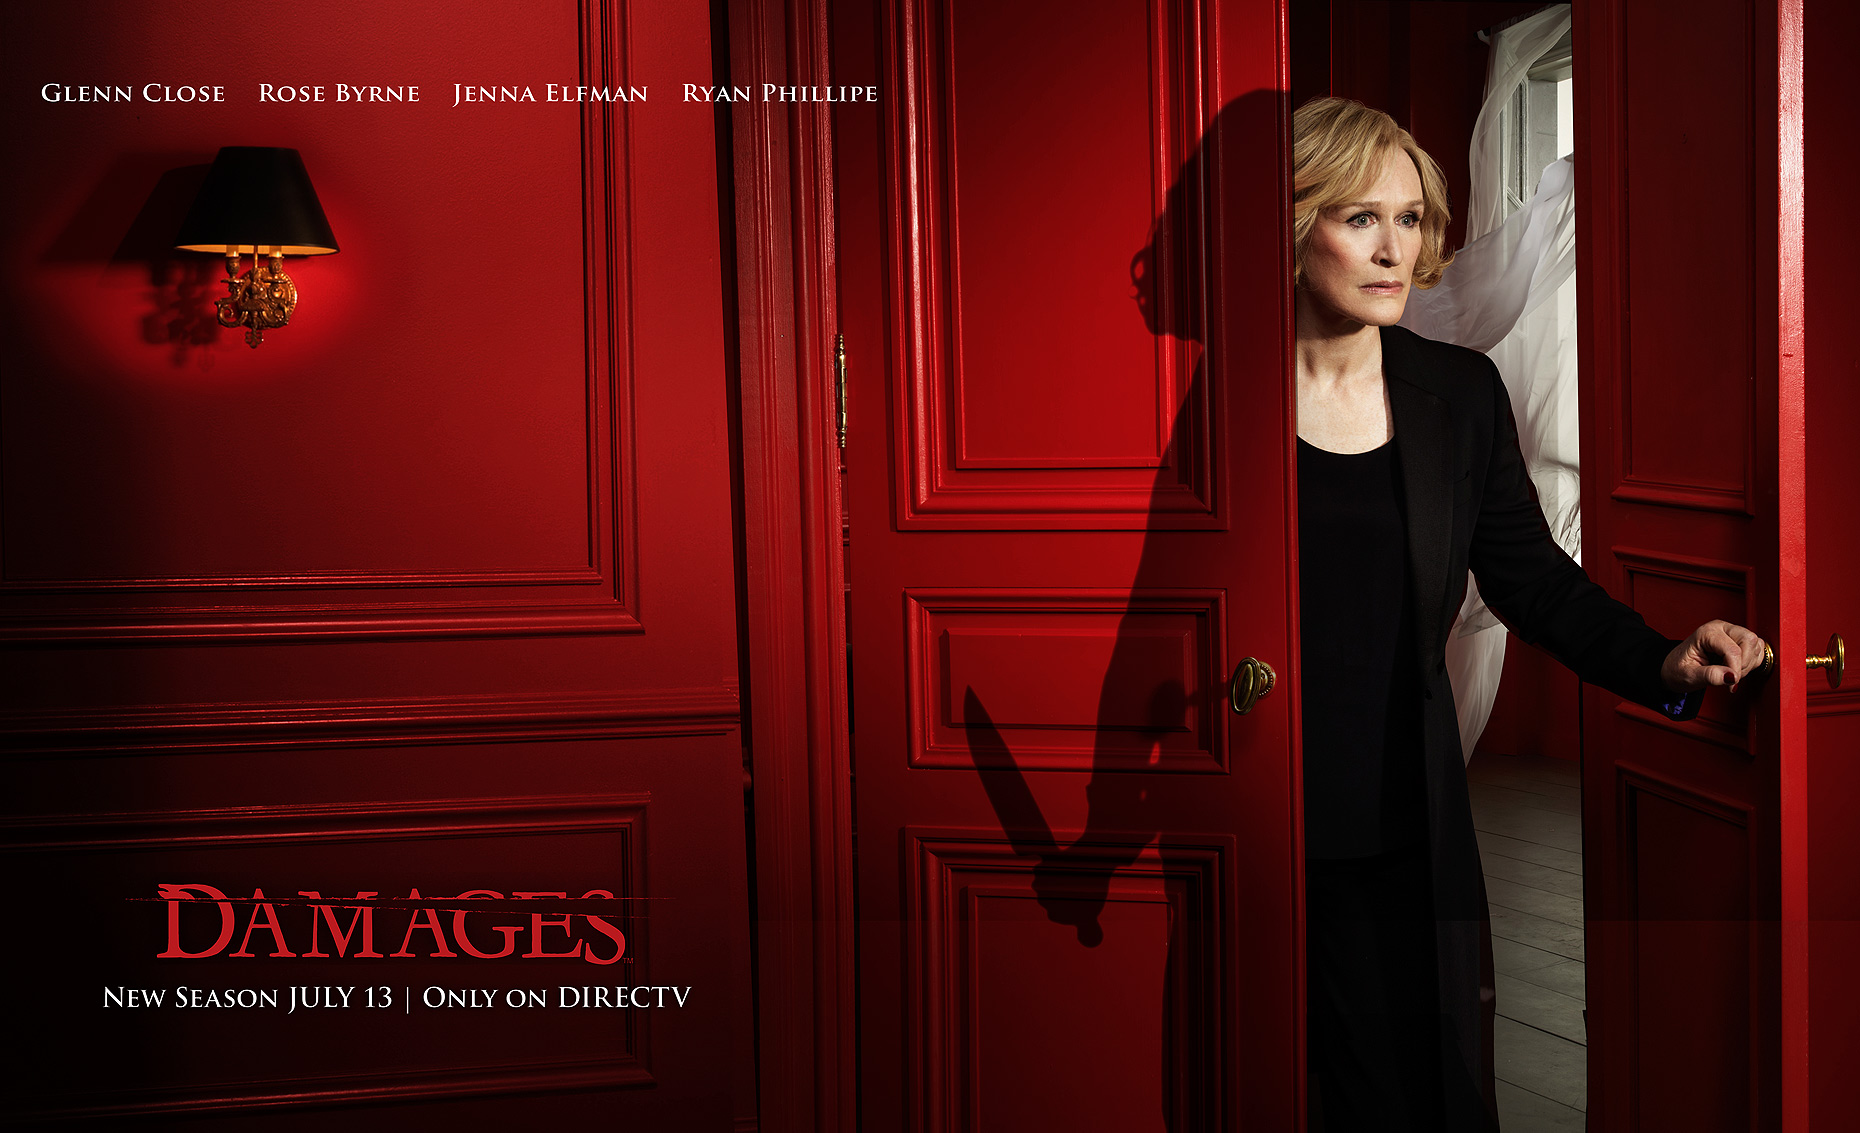 Damages-Teaser-by-Robert-Ascroft.jpg